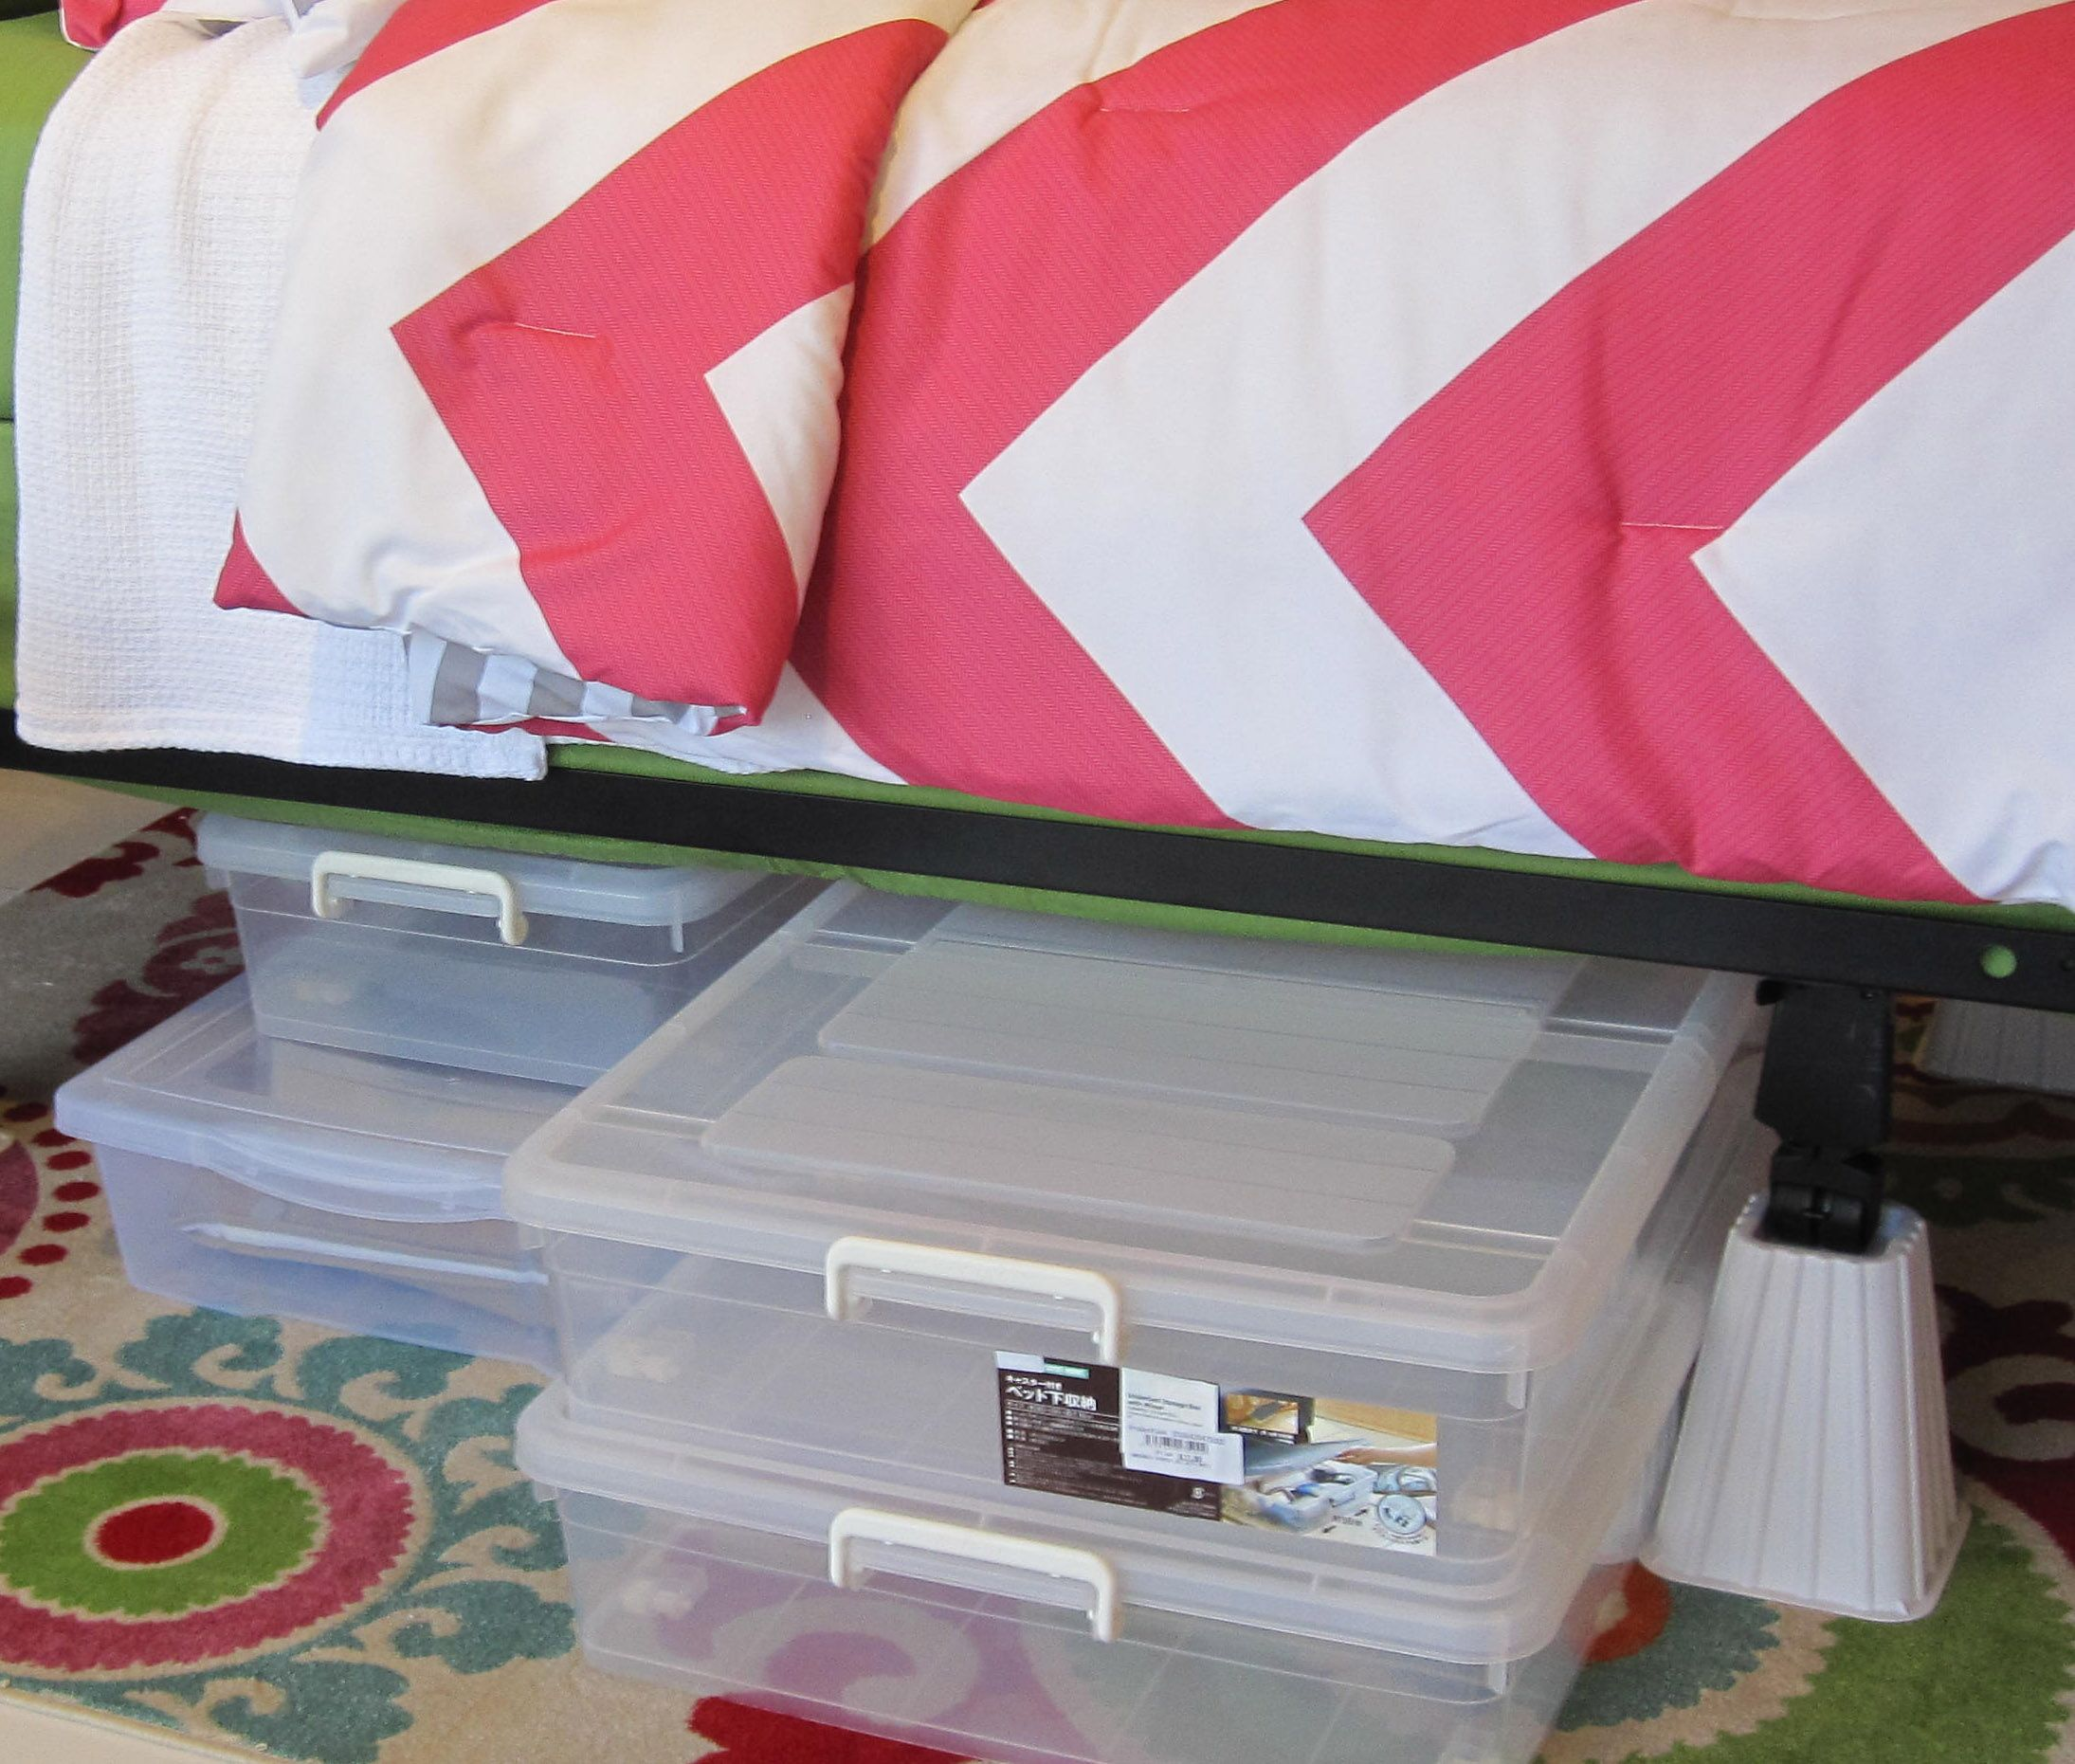 store your things under the bed easily with storage boxes from aki